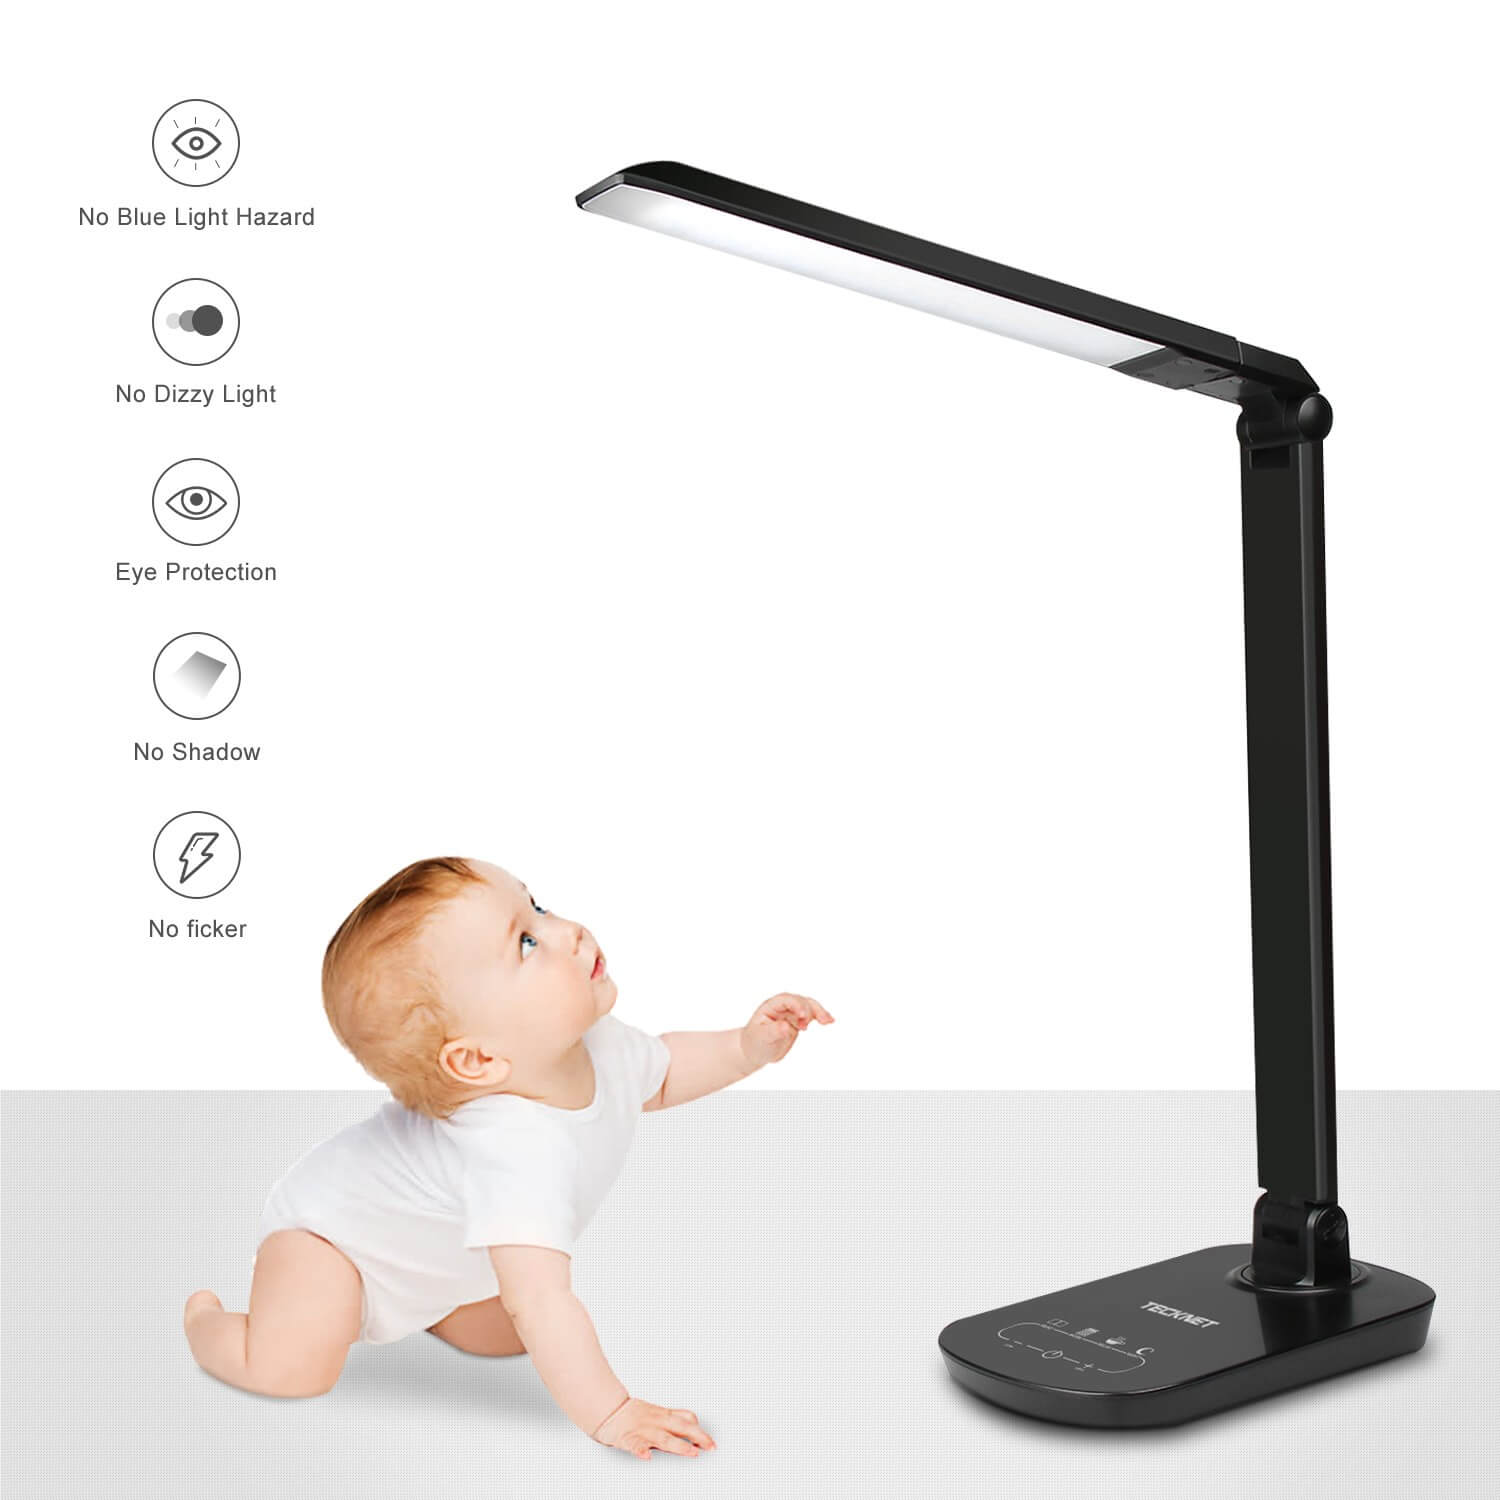 TeckNet LED12 15W EyeCare Dimmable LED Desk Lighting With Touch Control - настолна LED лампа със защита за очите, USB порт и нагласяща се основа